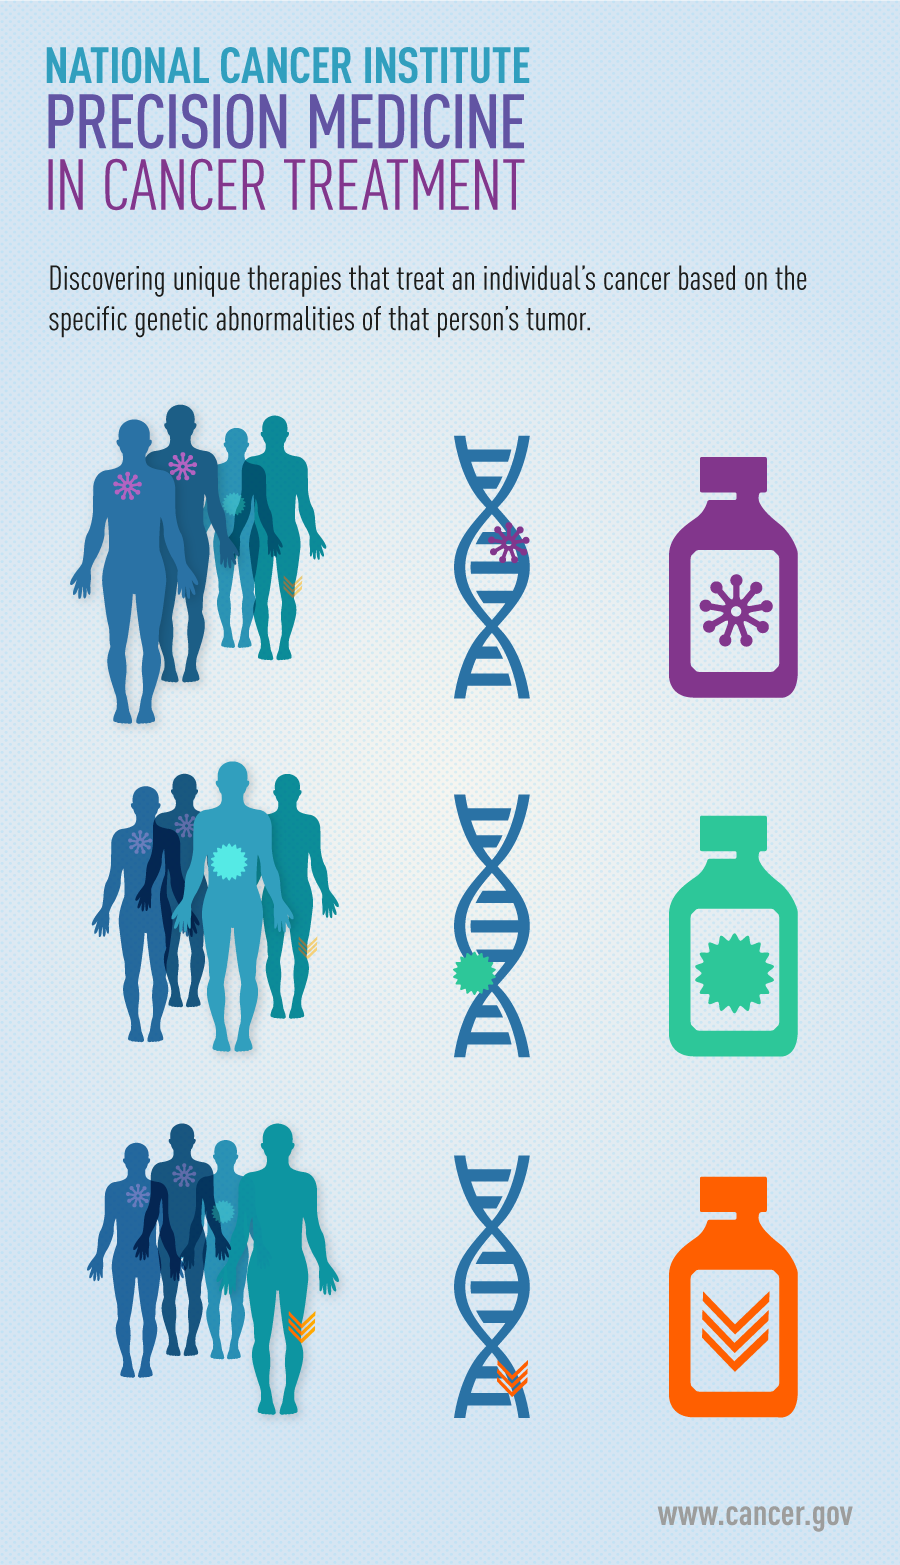 Infographic highlighting precision medicines's role in discovering unique therapies based on specific genetic abnormailities in tumors.